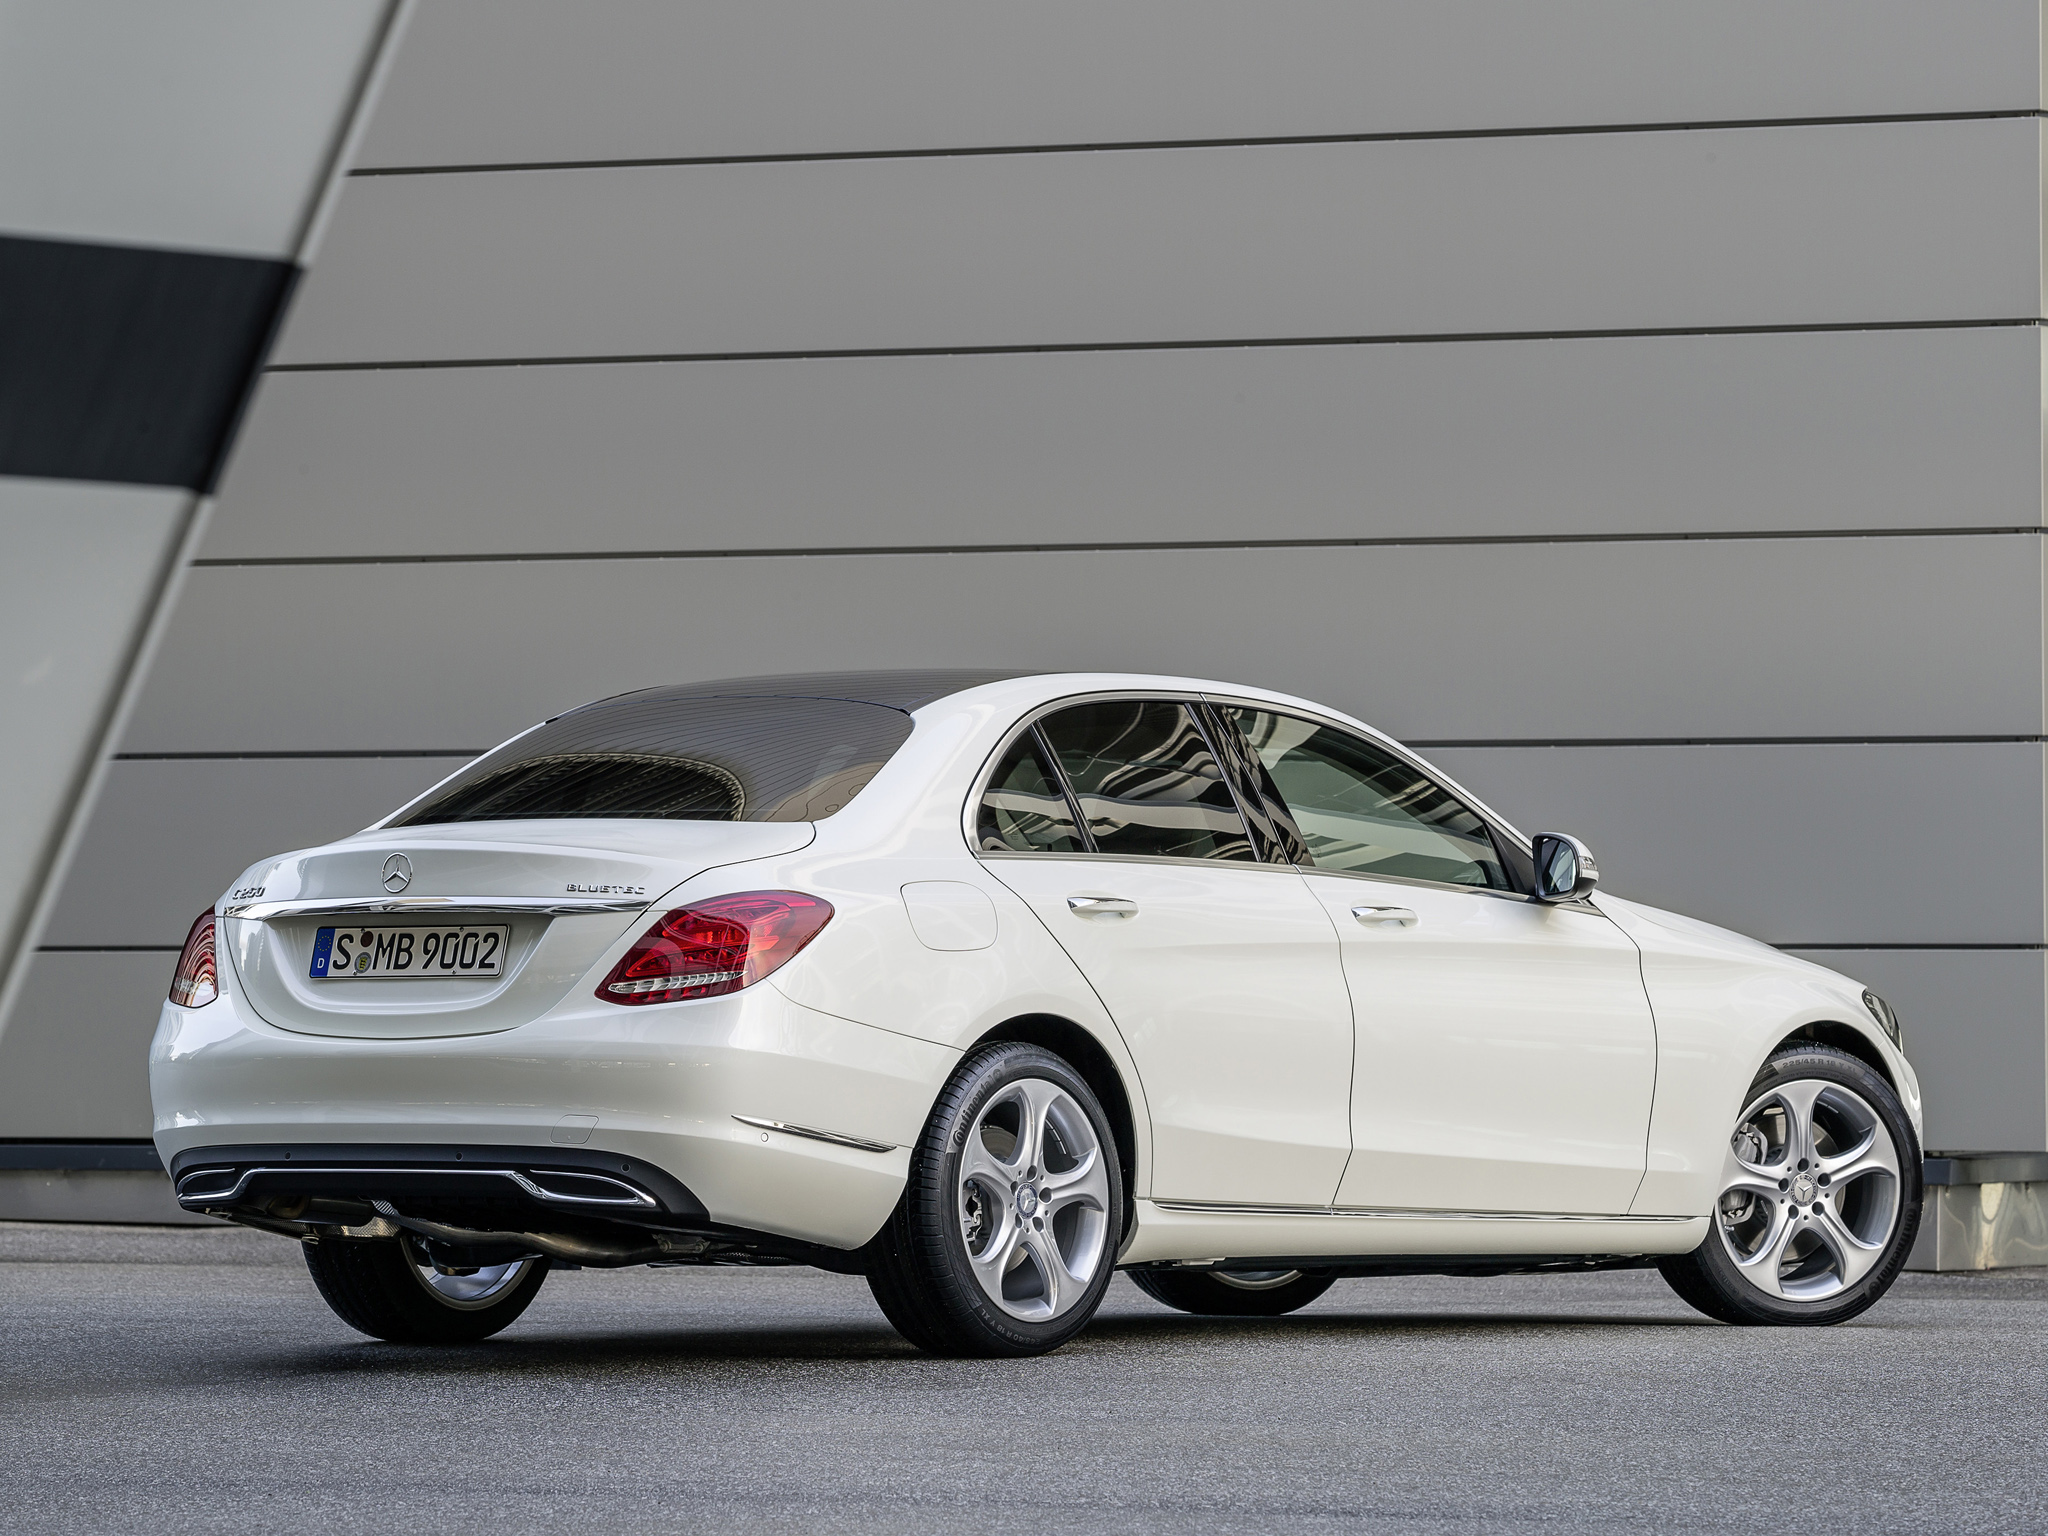 Image gallery mercedes c 250 2014 for 2014 mercedes benz c250 review